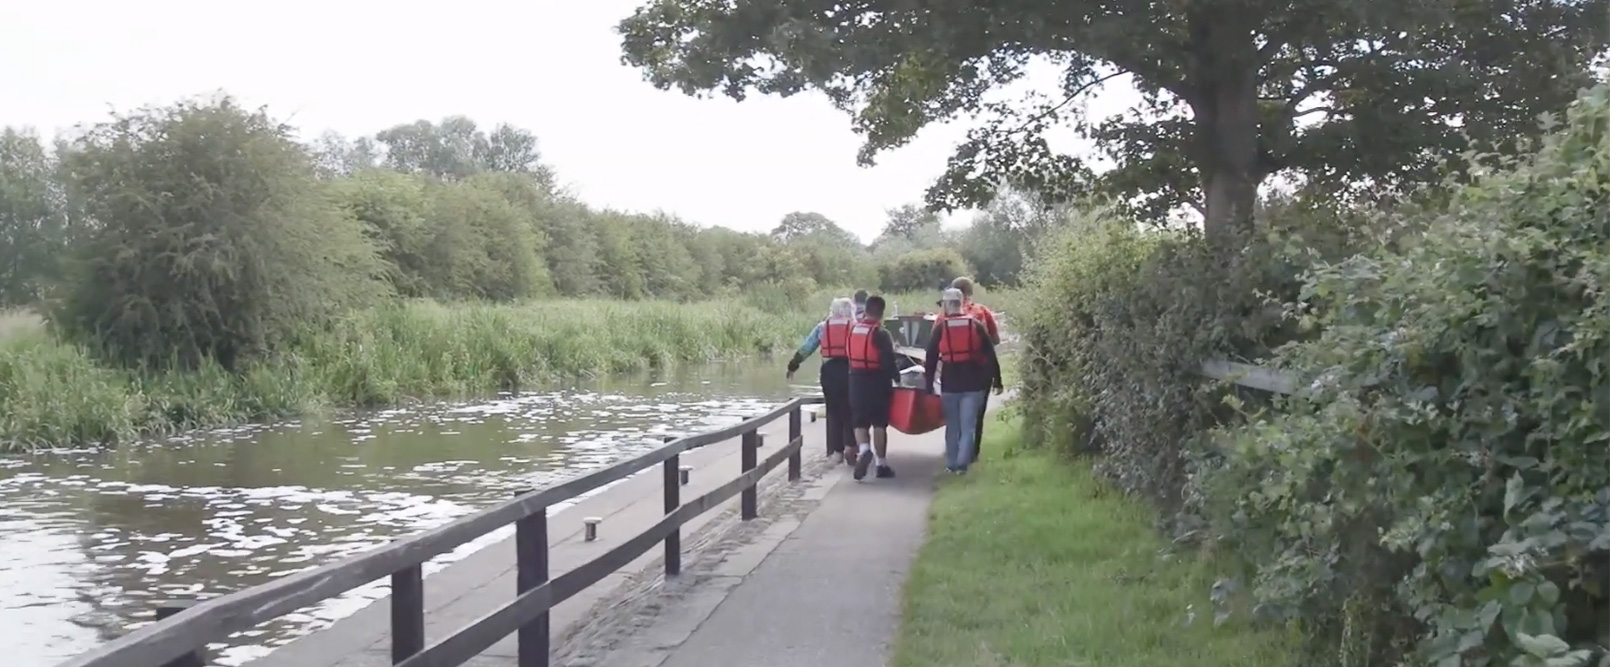 Canoeing as part of Outdoor Education